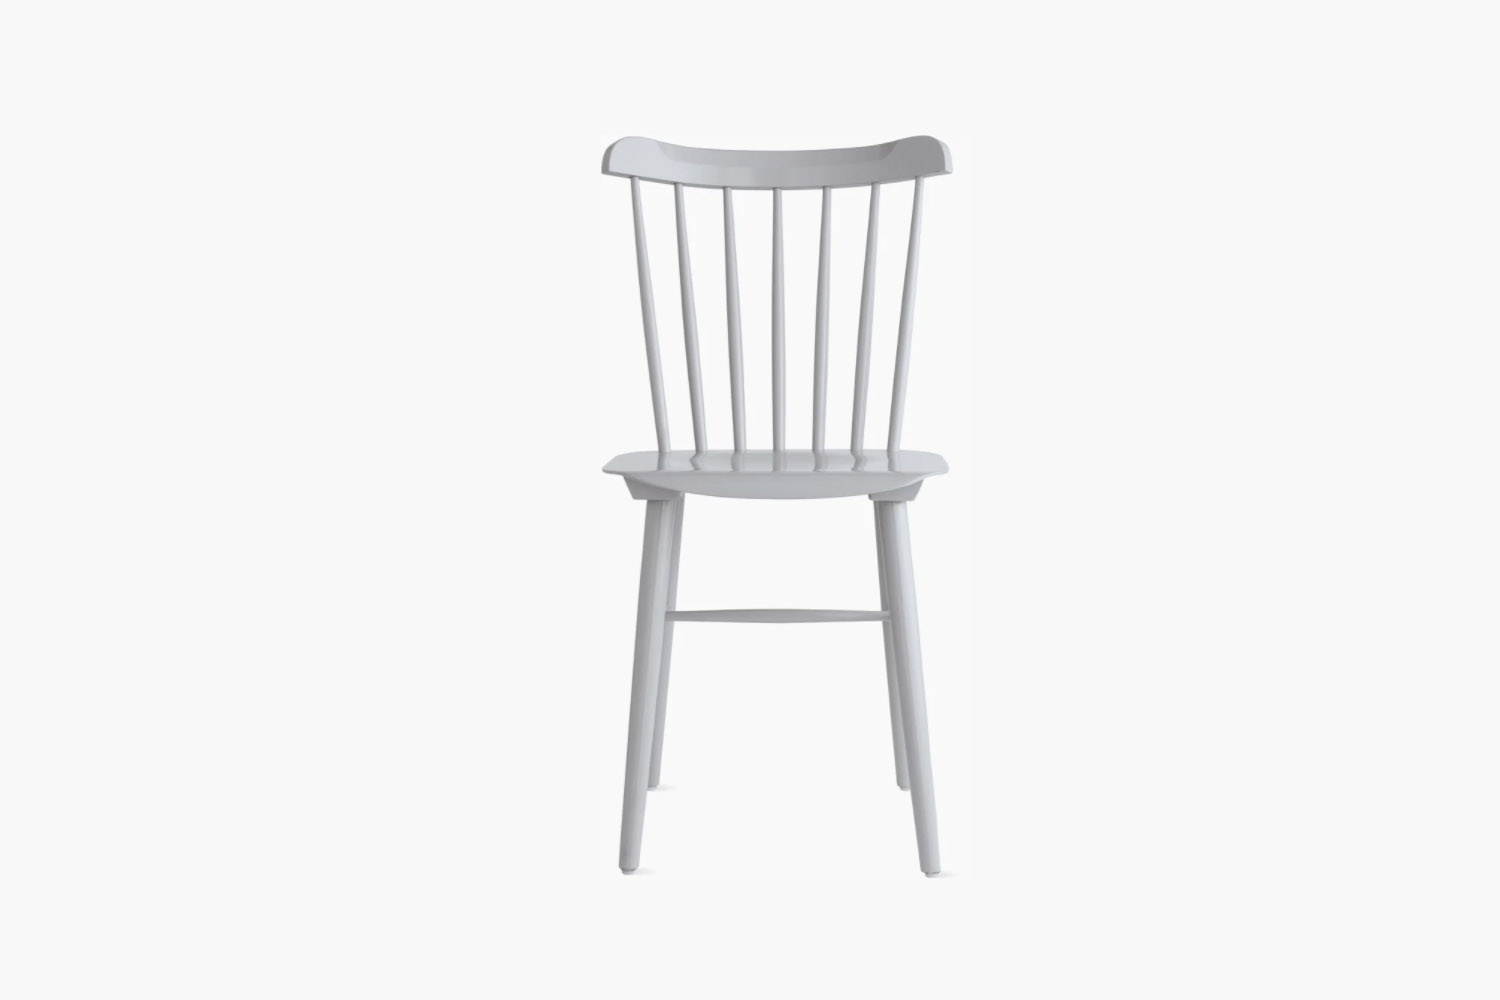 10 Easy Pieces: Dining Chairs Under $200